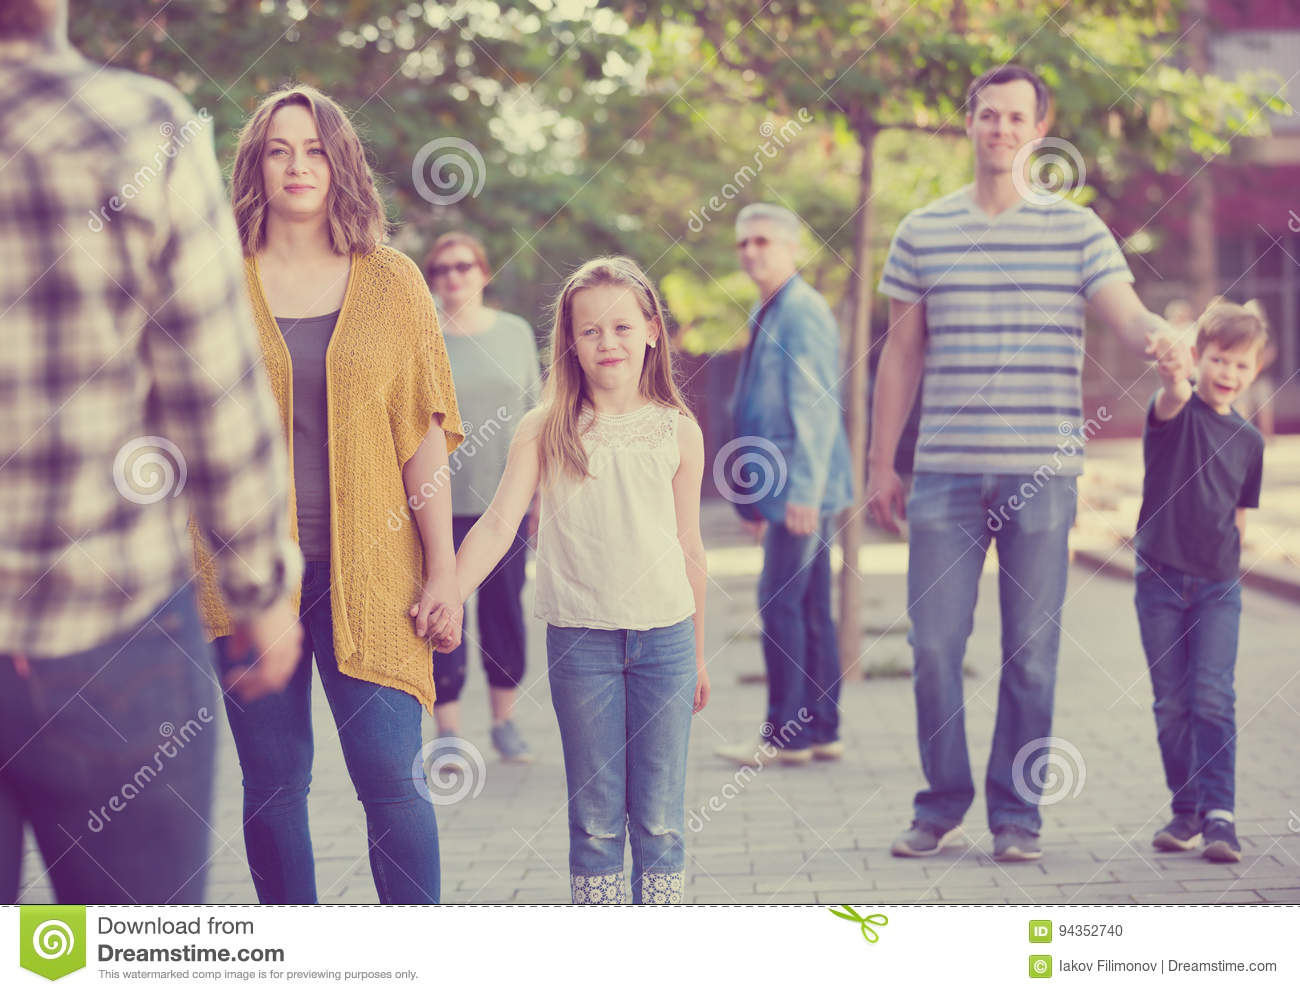 People of different ages walk in park